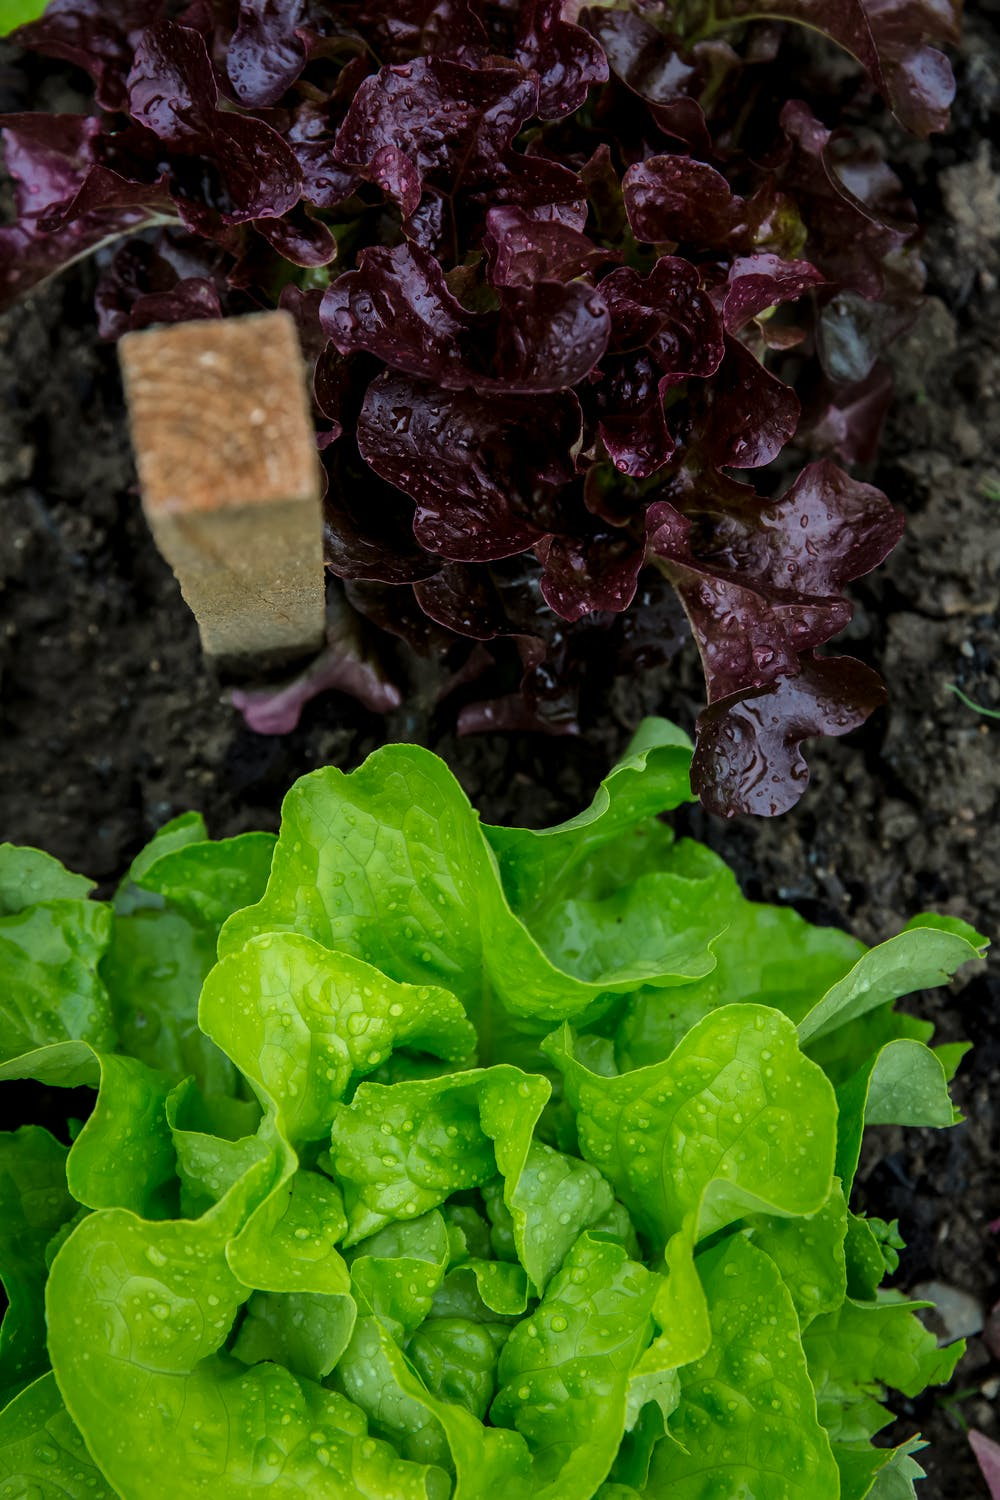 Growing Lettuce | Grow A Vegetable Garden With In Season Vegetables